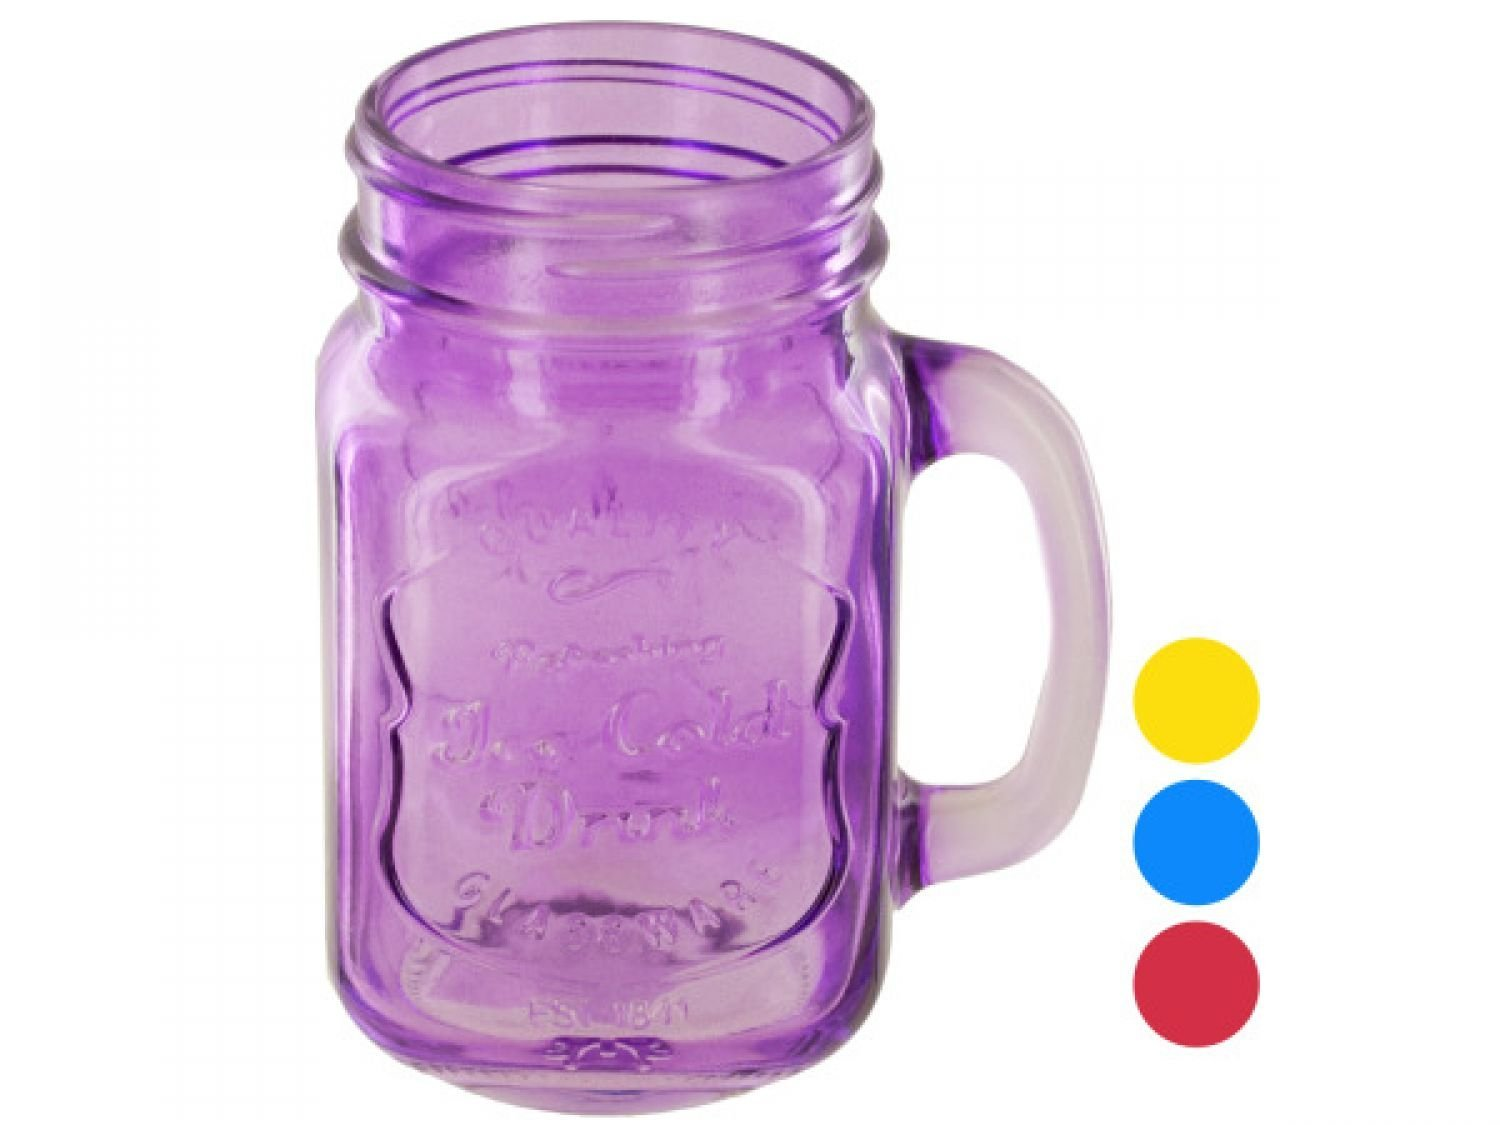 Vintage Style Colored Mason Drinking Jar - Set of 64, [Kitchen & Dining, Drinkware]